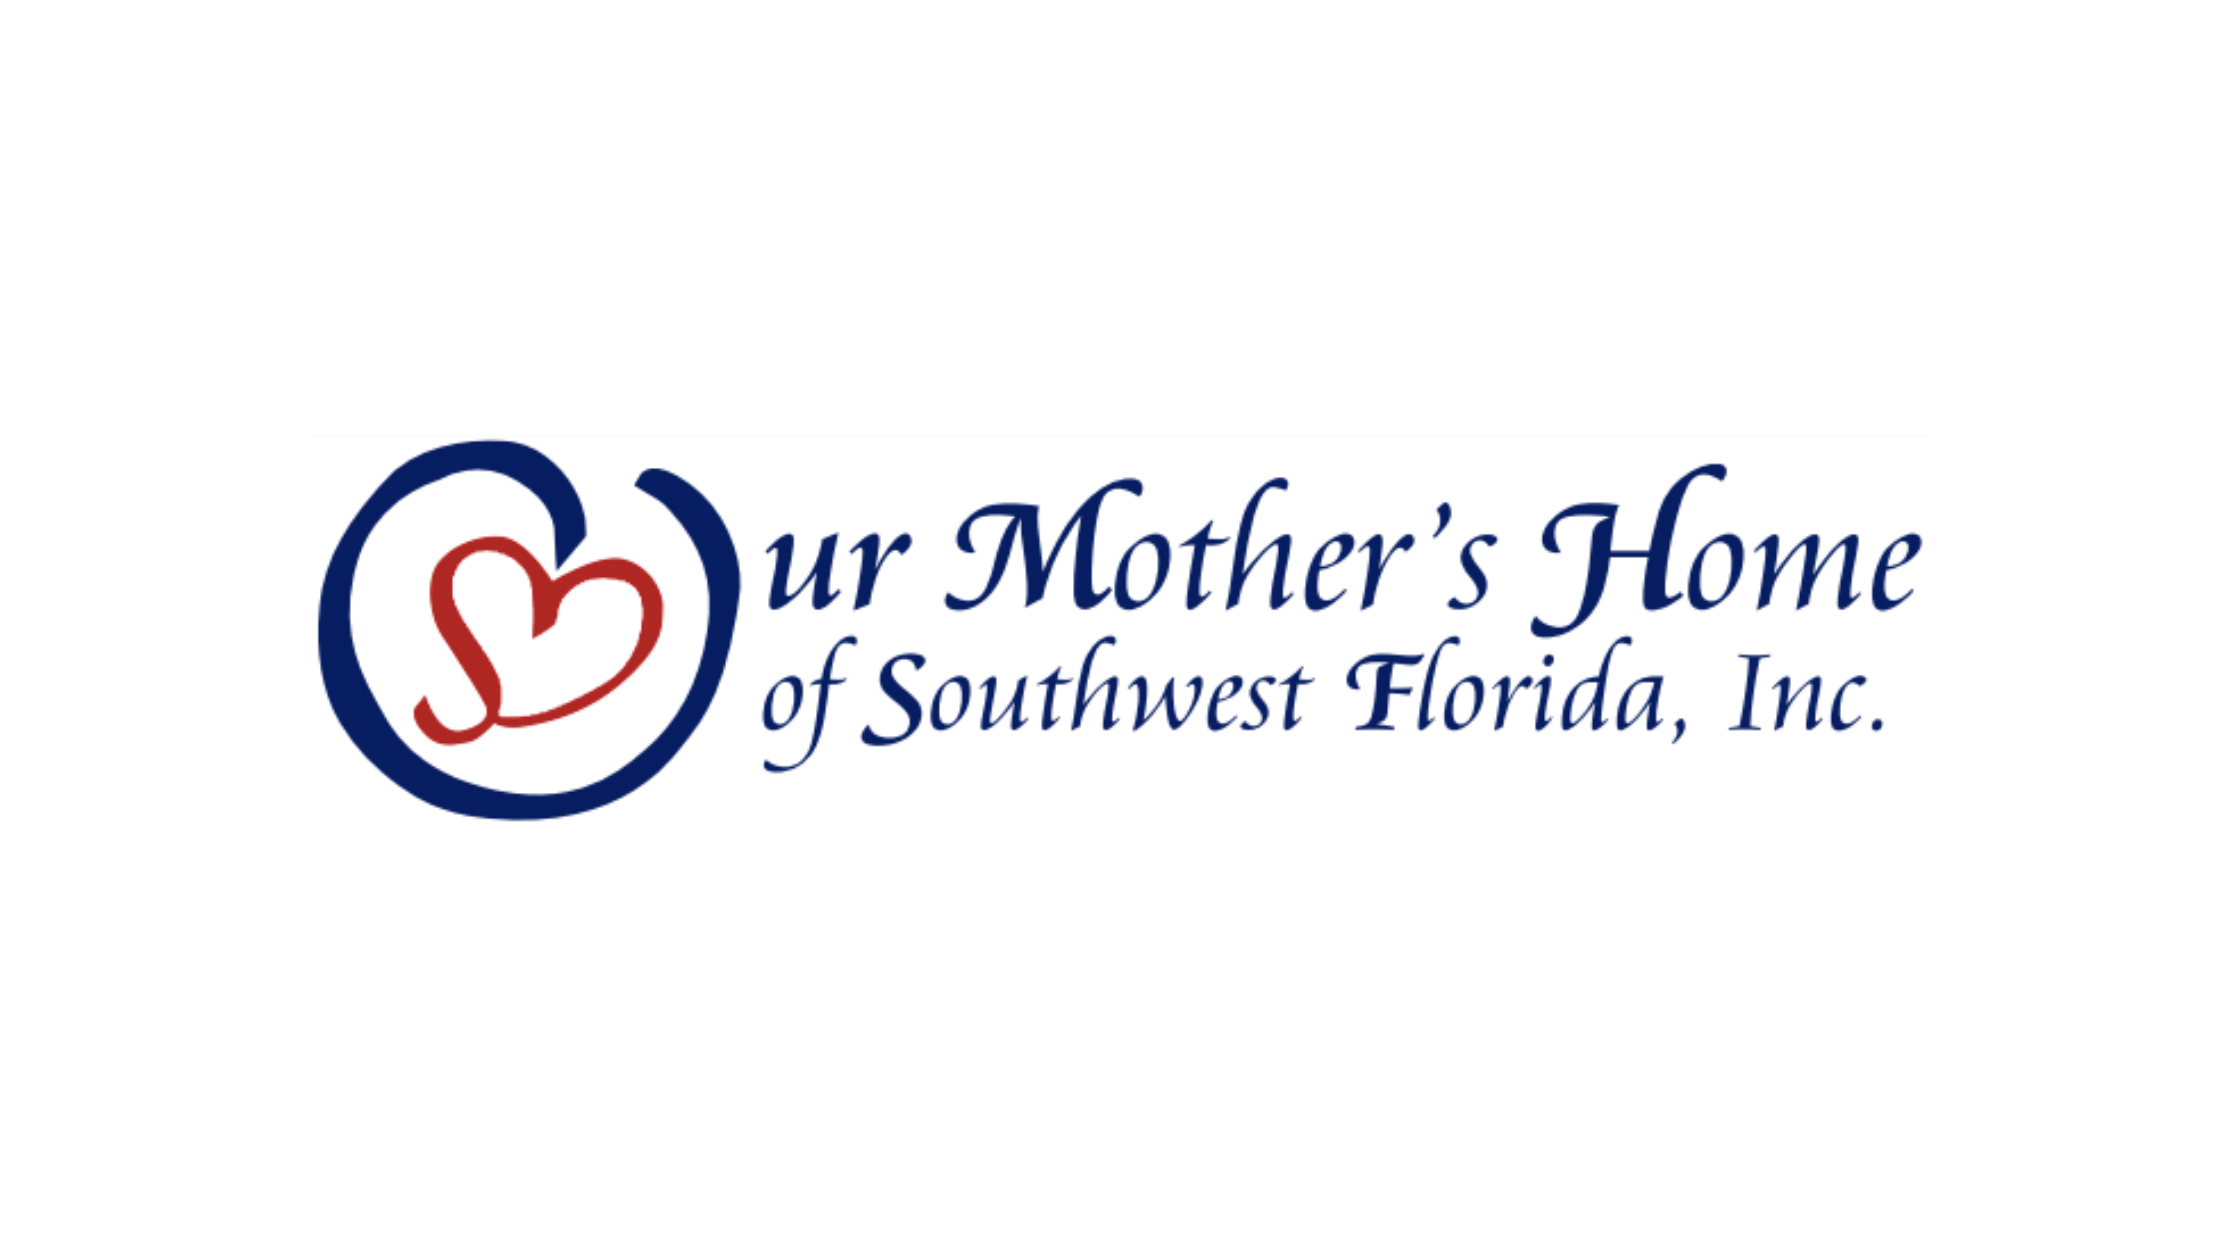 Our Mother's Home hires Viodelka Moreira as new executive director